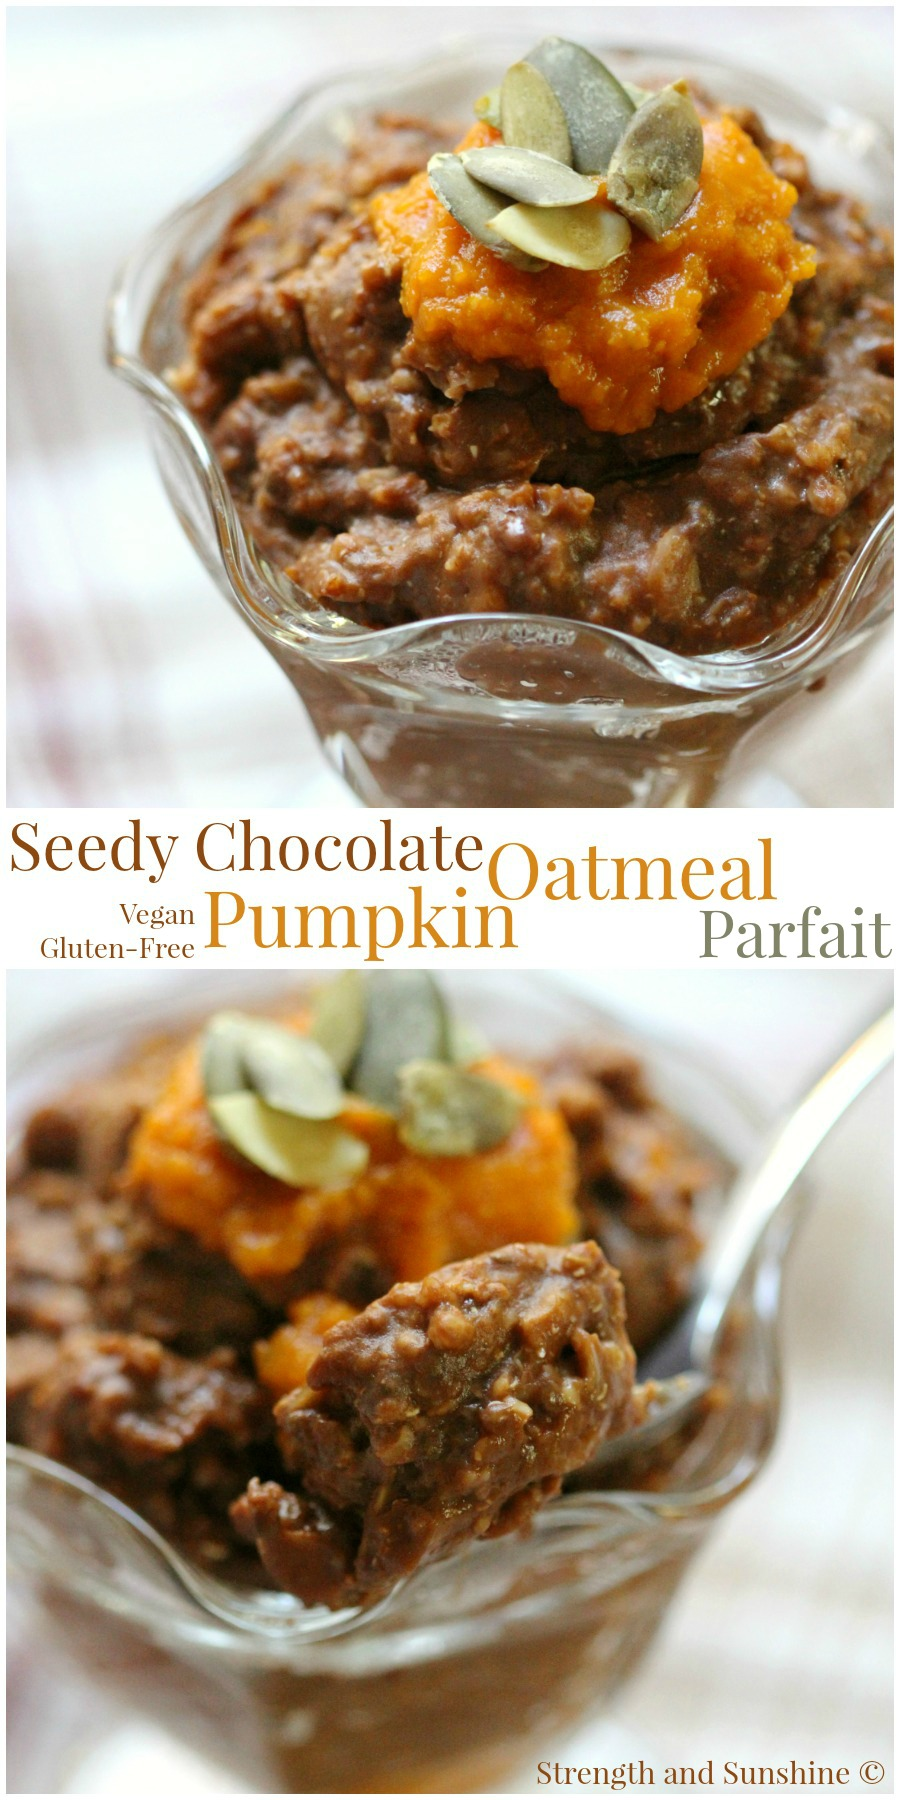 Seedy Chocolate Oatmeal Parfait | Strength and Sunshine @RebeccaGF666 A speedy seedy chocolate pumpkin oatmeal parfait that's gluten-free and vegan. Healthy fats, cocoa, and whole grains make this the perfect comforting breakfast recipe to fuel and start your day with on a chilly morning!